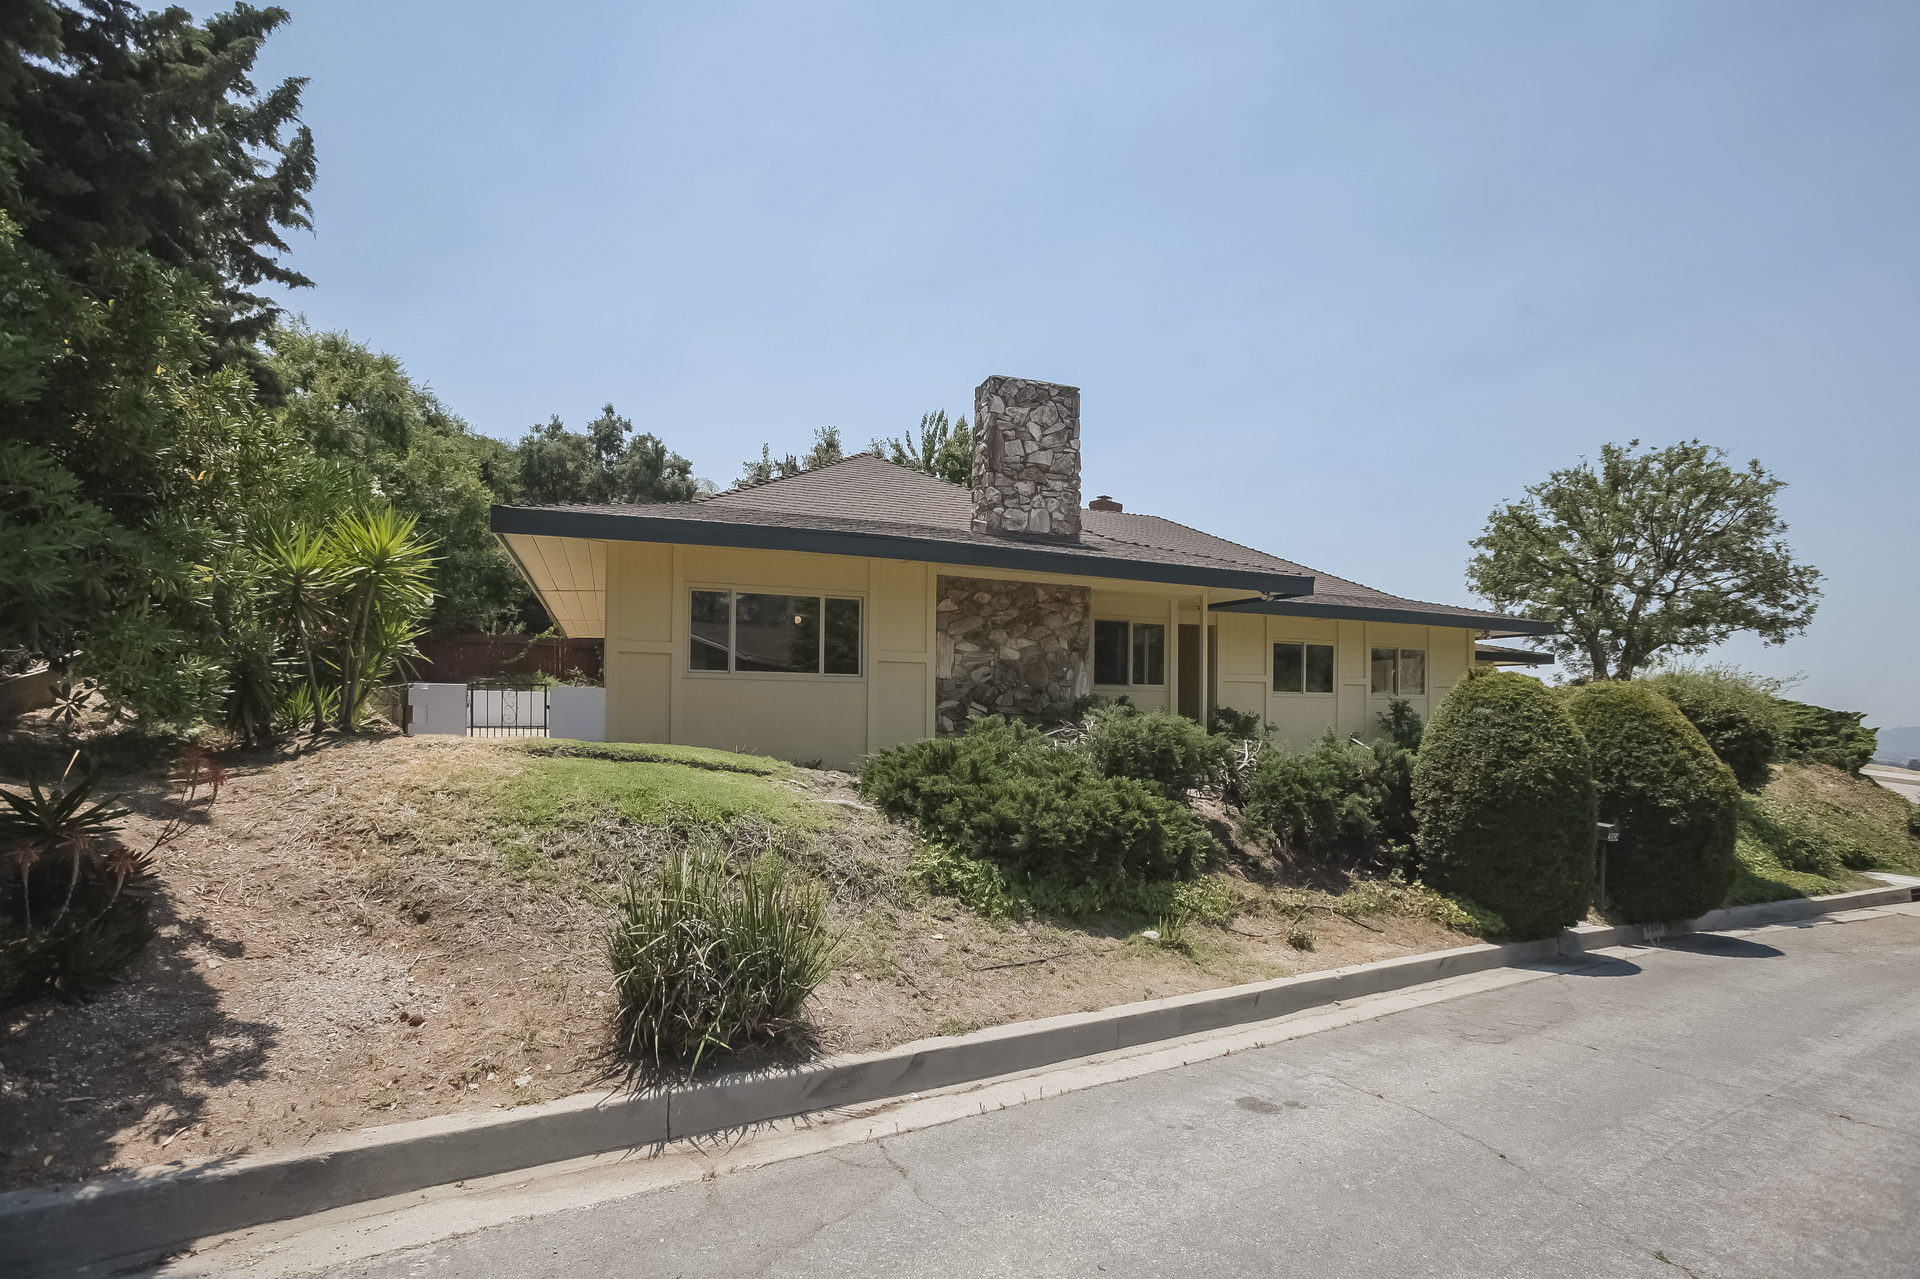 001-Front_View_on_Hollywell_side-4443069-medium.jpg